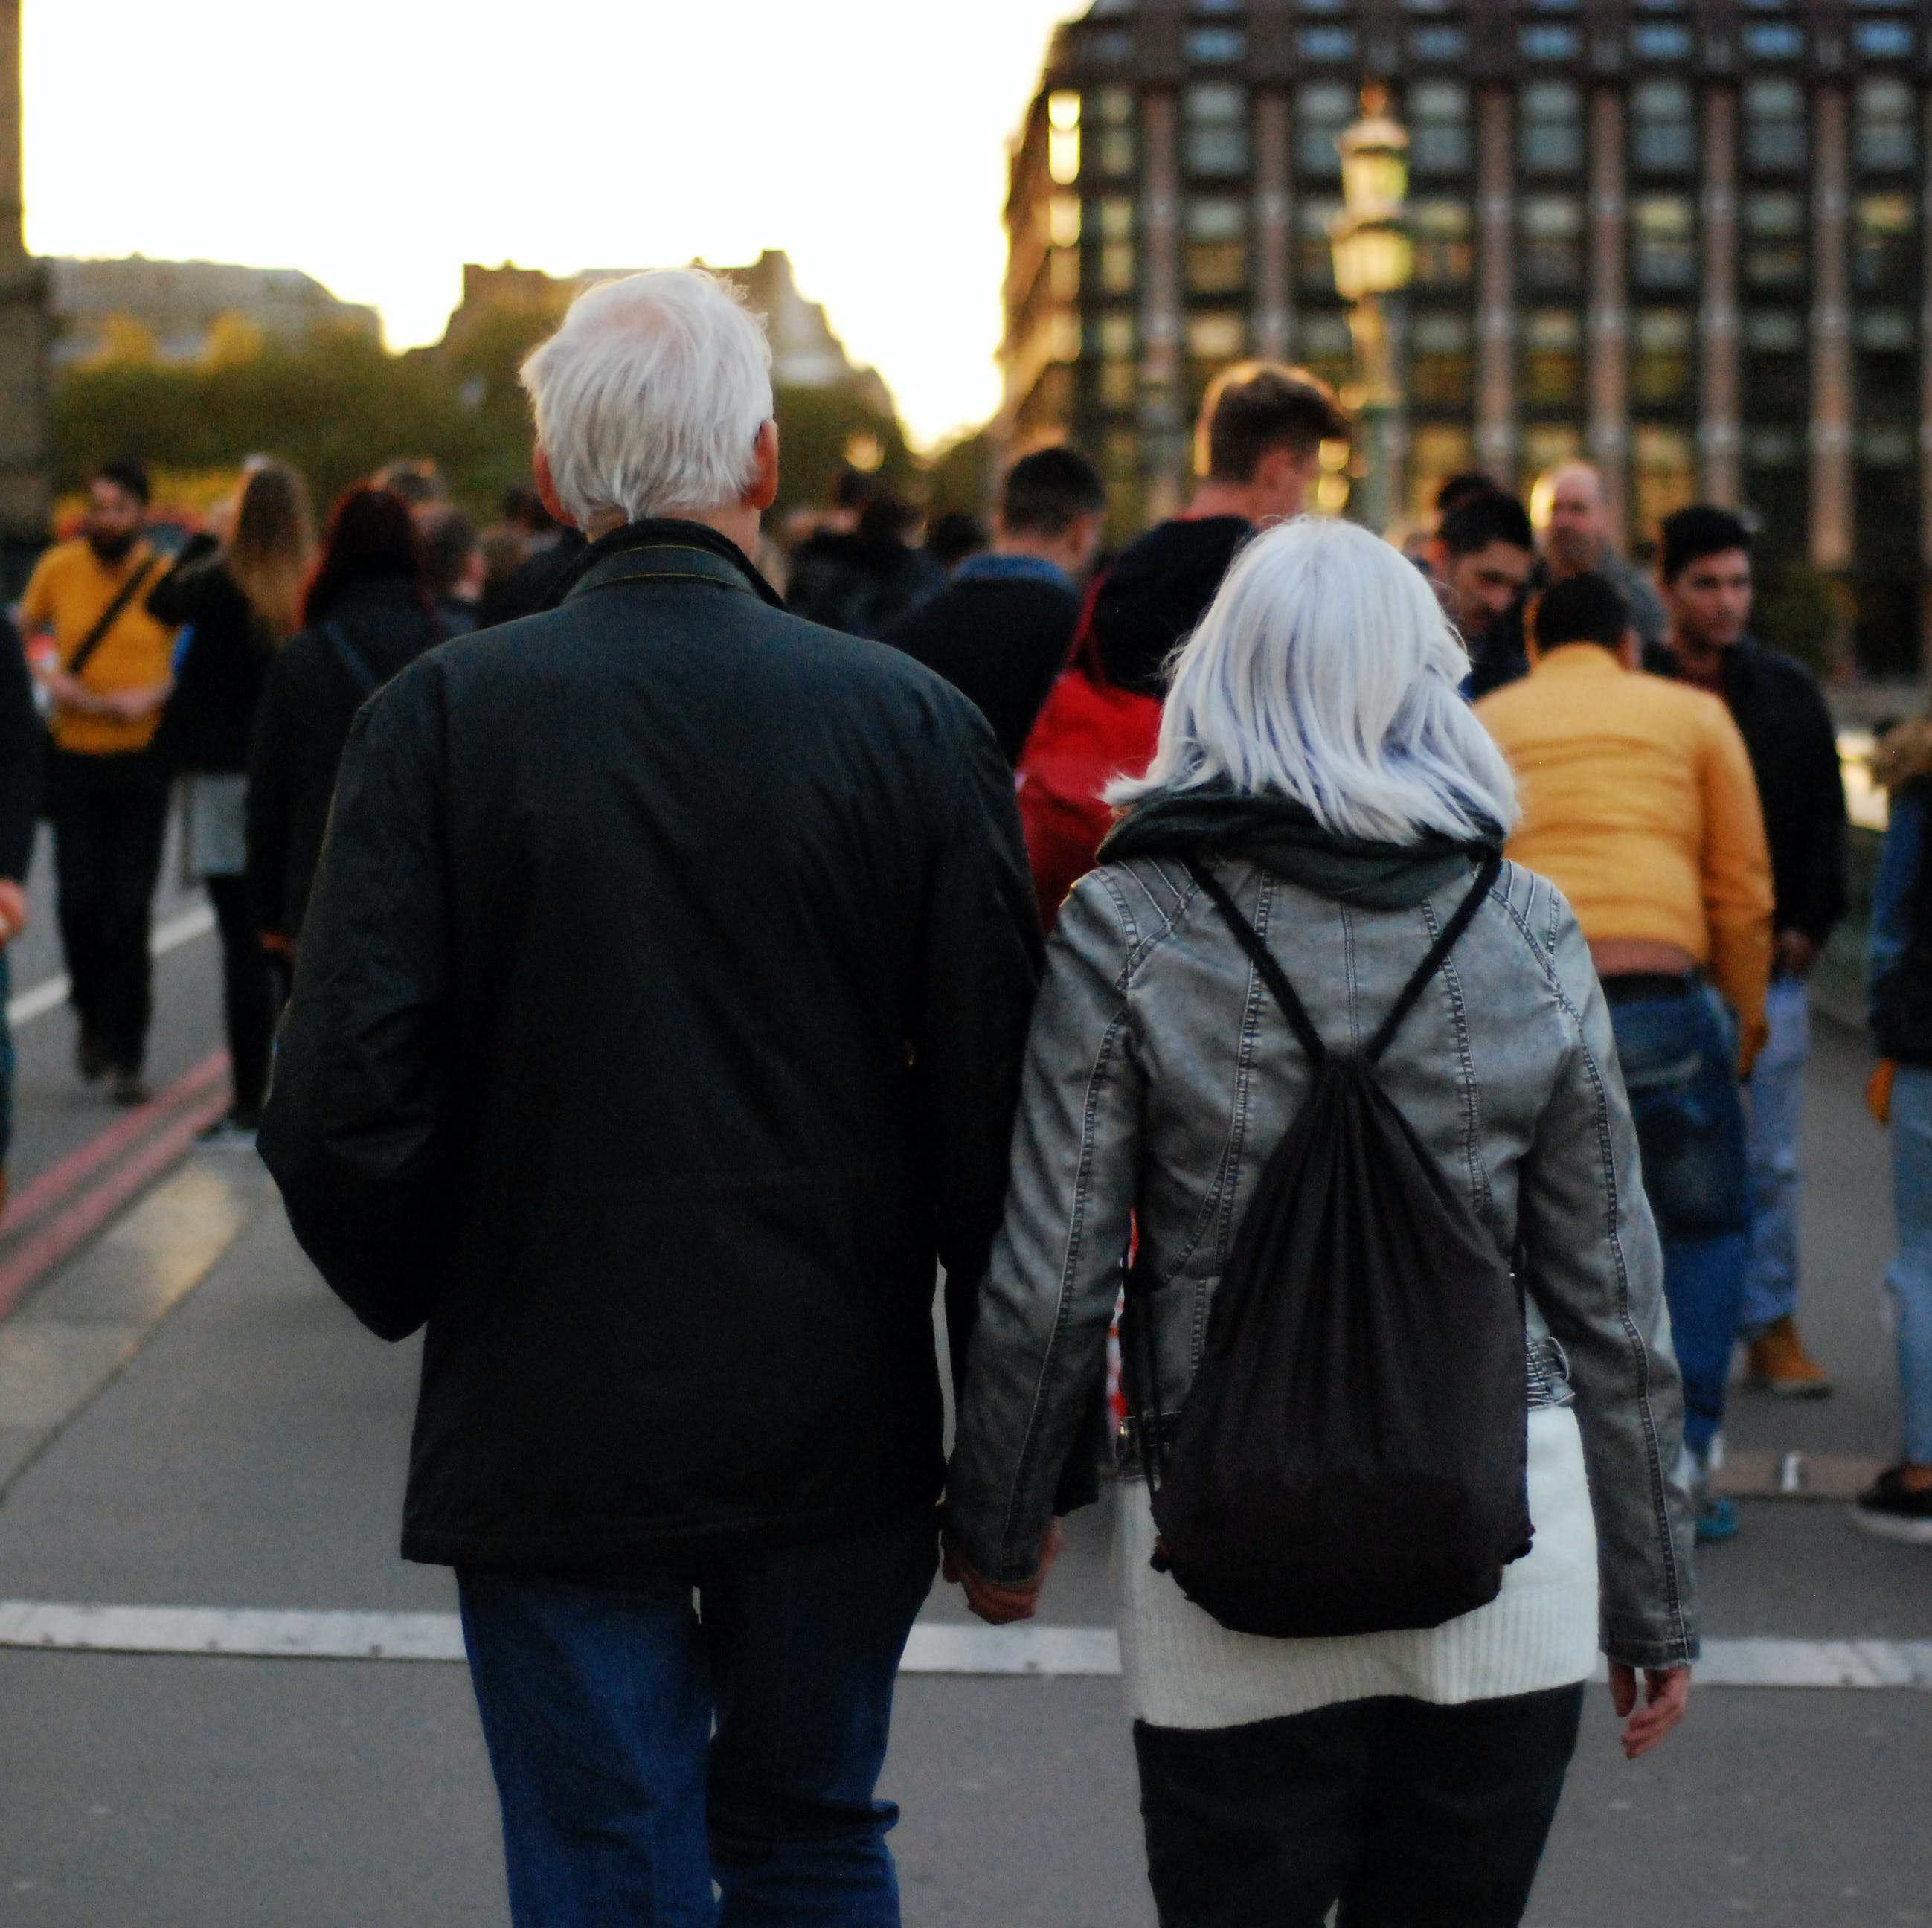 Man in Black Jacket Beside Woman in Grey Leather Jacket Holding Hands at Dusk in Busy Street